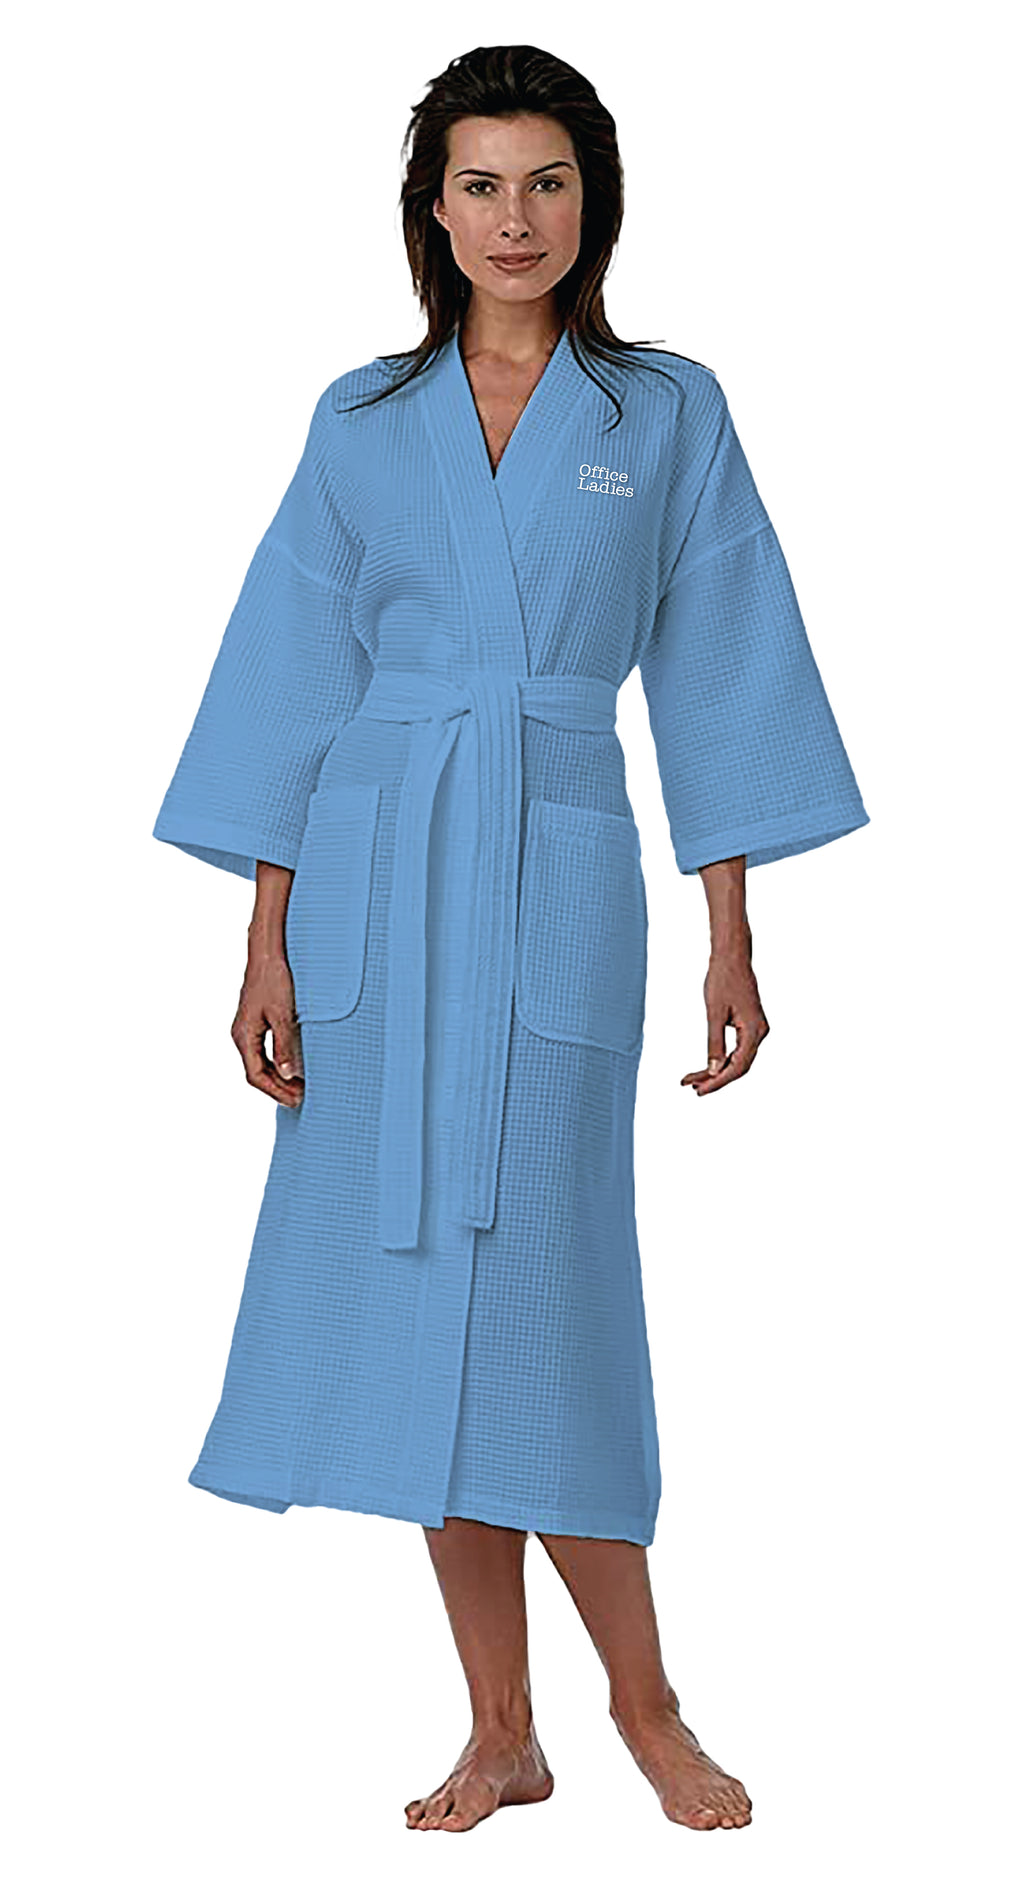 Office Ladies: Robe